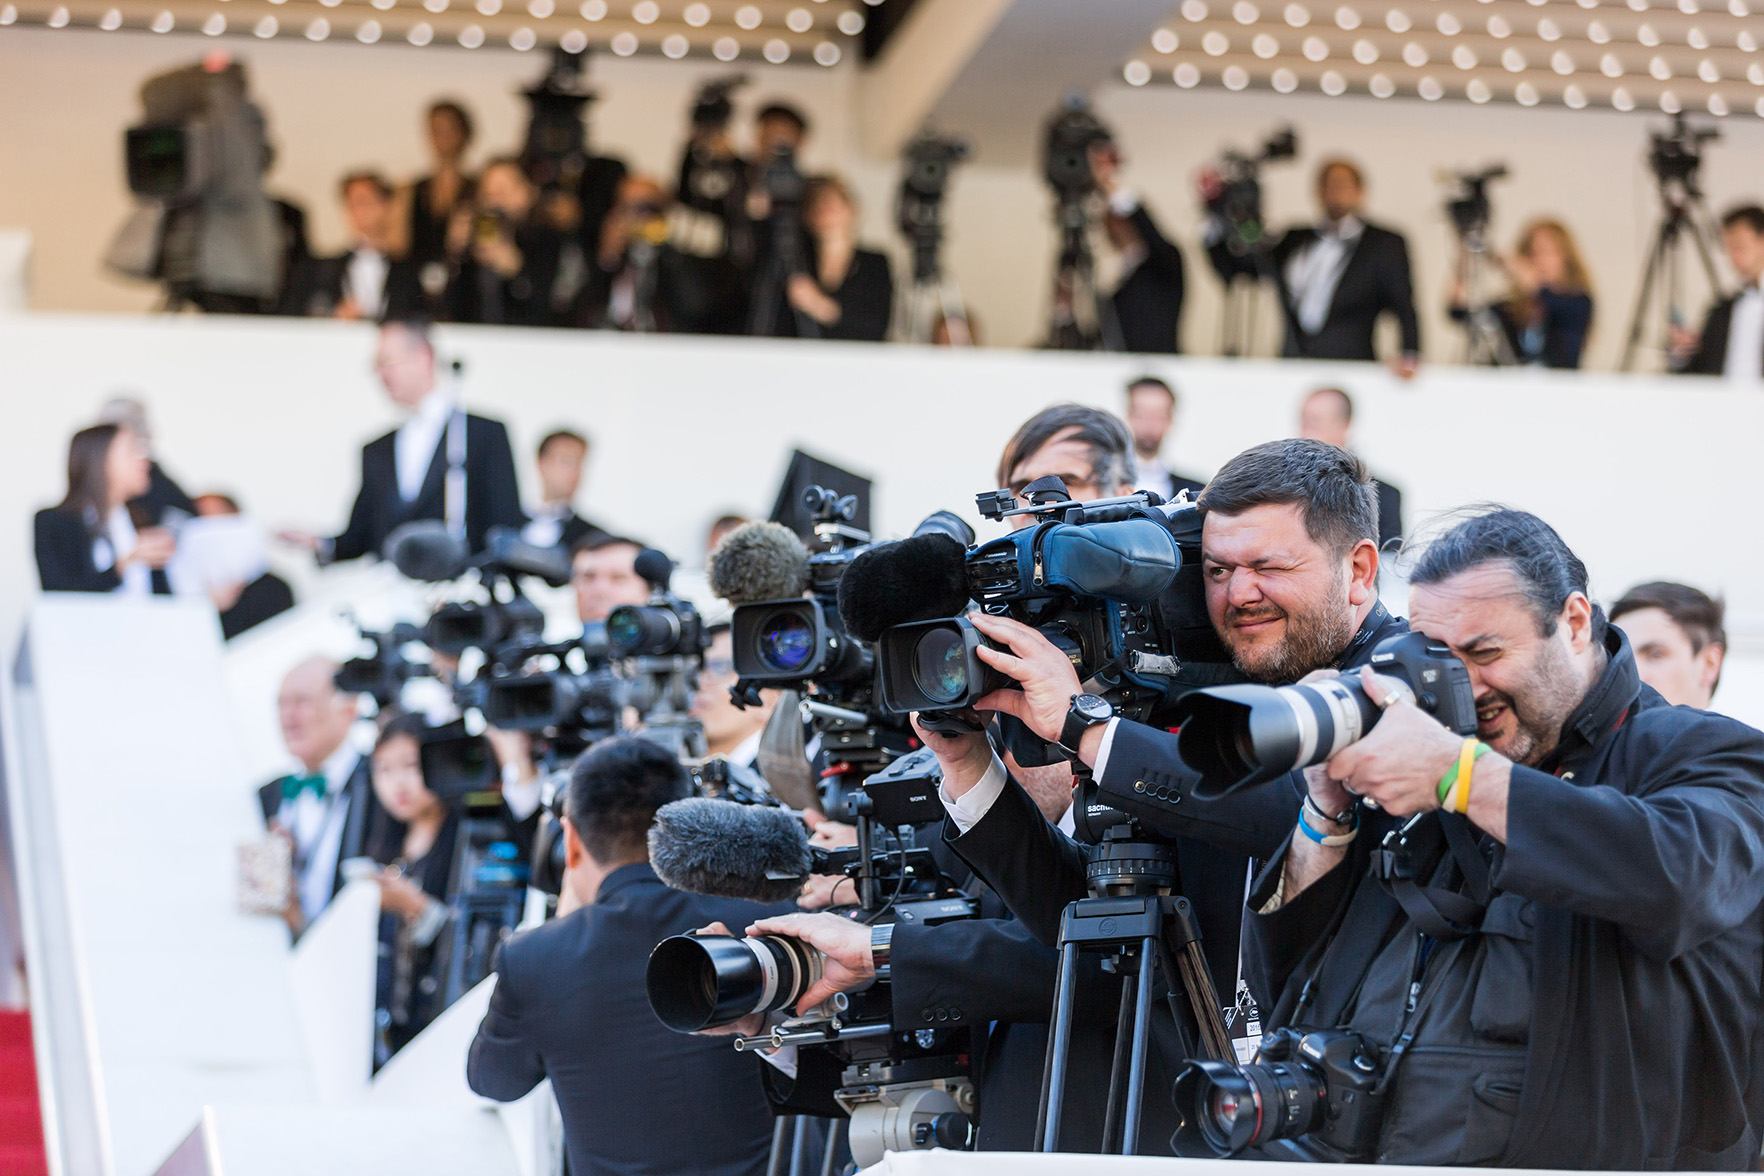 Some advice to get ready for the Cannes Film Festival ede544d86748